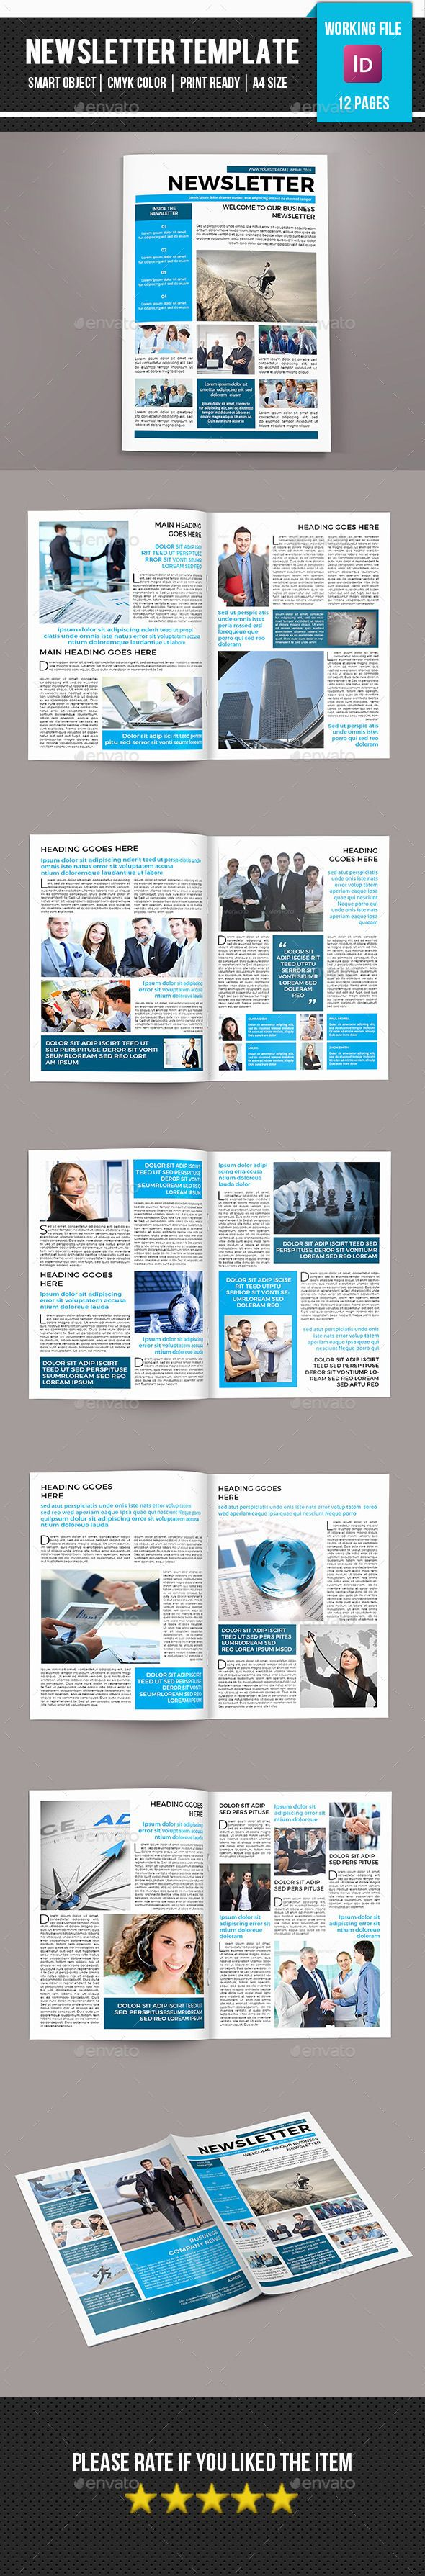 Corporate Newsletter-V05 | Print templates, Newsletter templates and ...